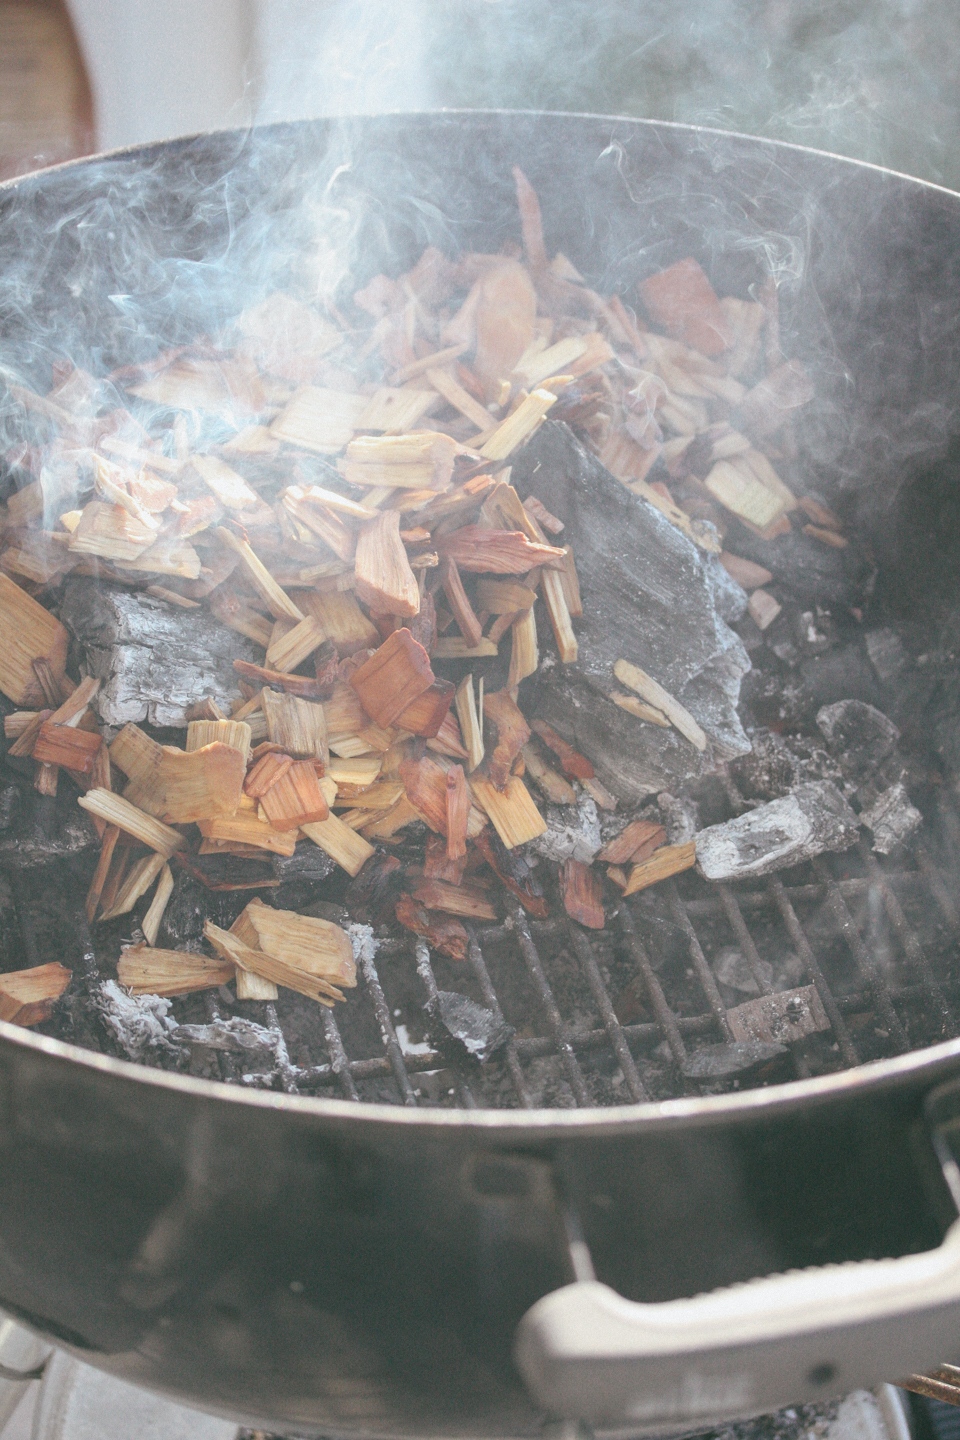 Pour the coals to one side of the Weber and place the wood chips on top of the coal